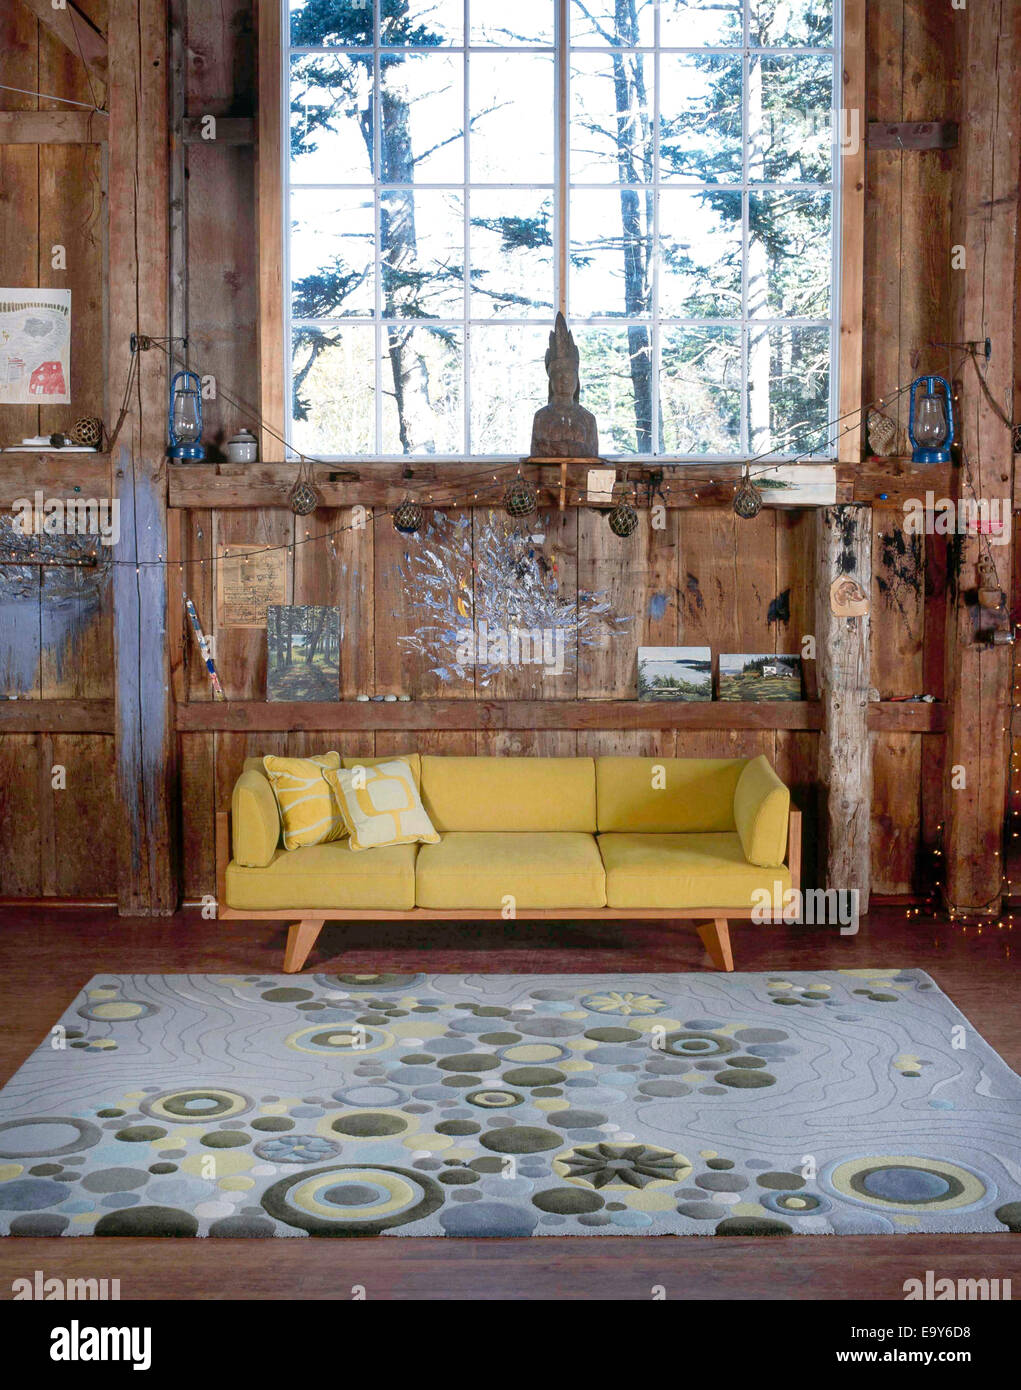 couch and rug in barn studio - Stock Image